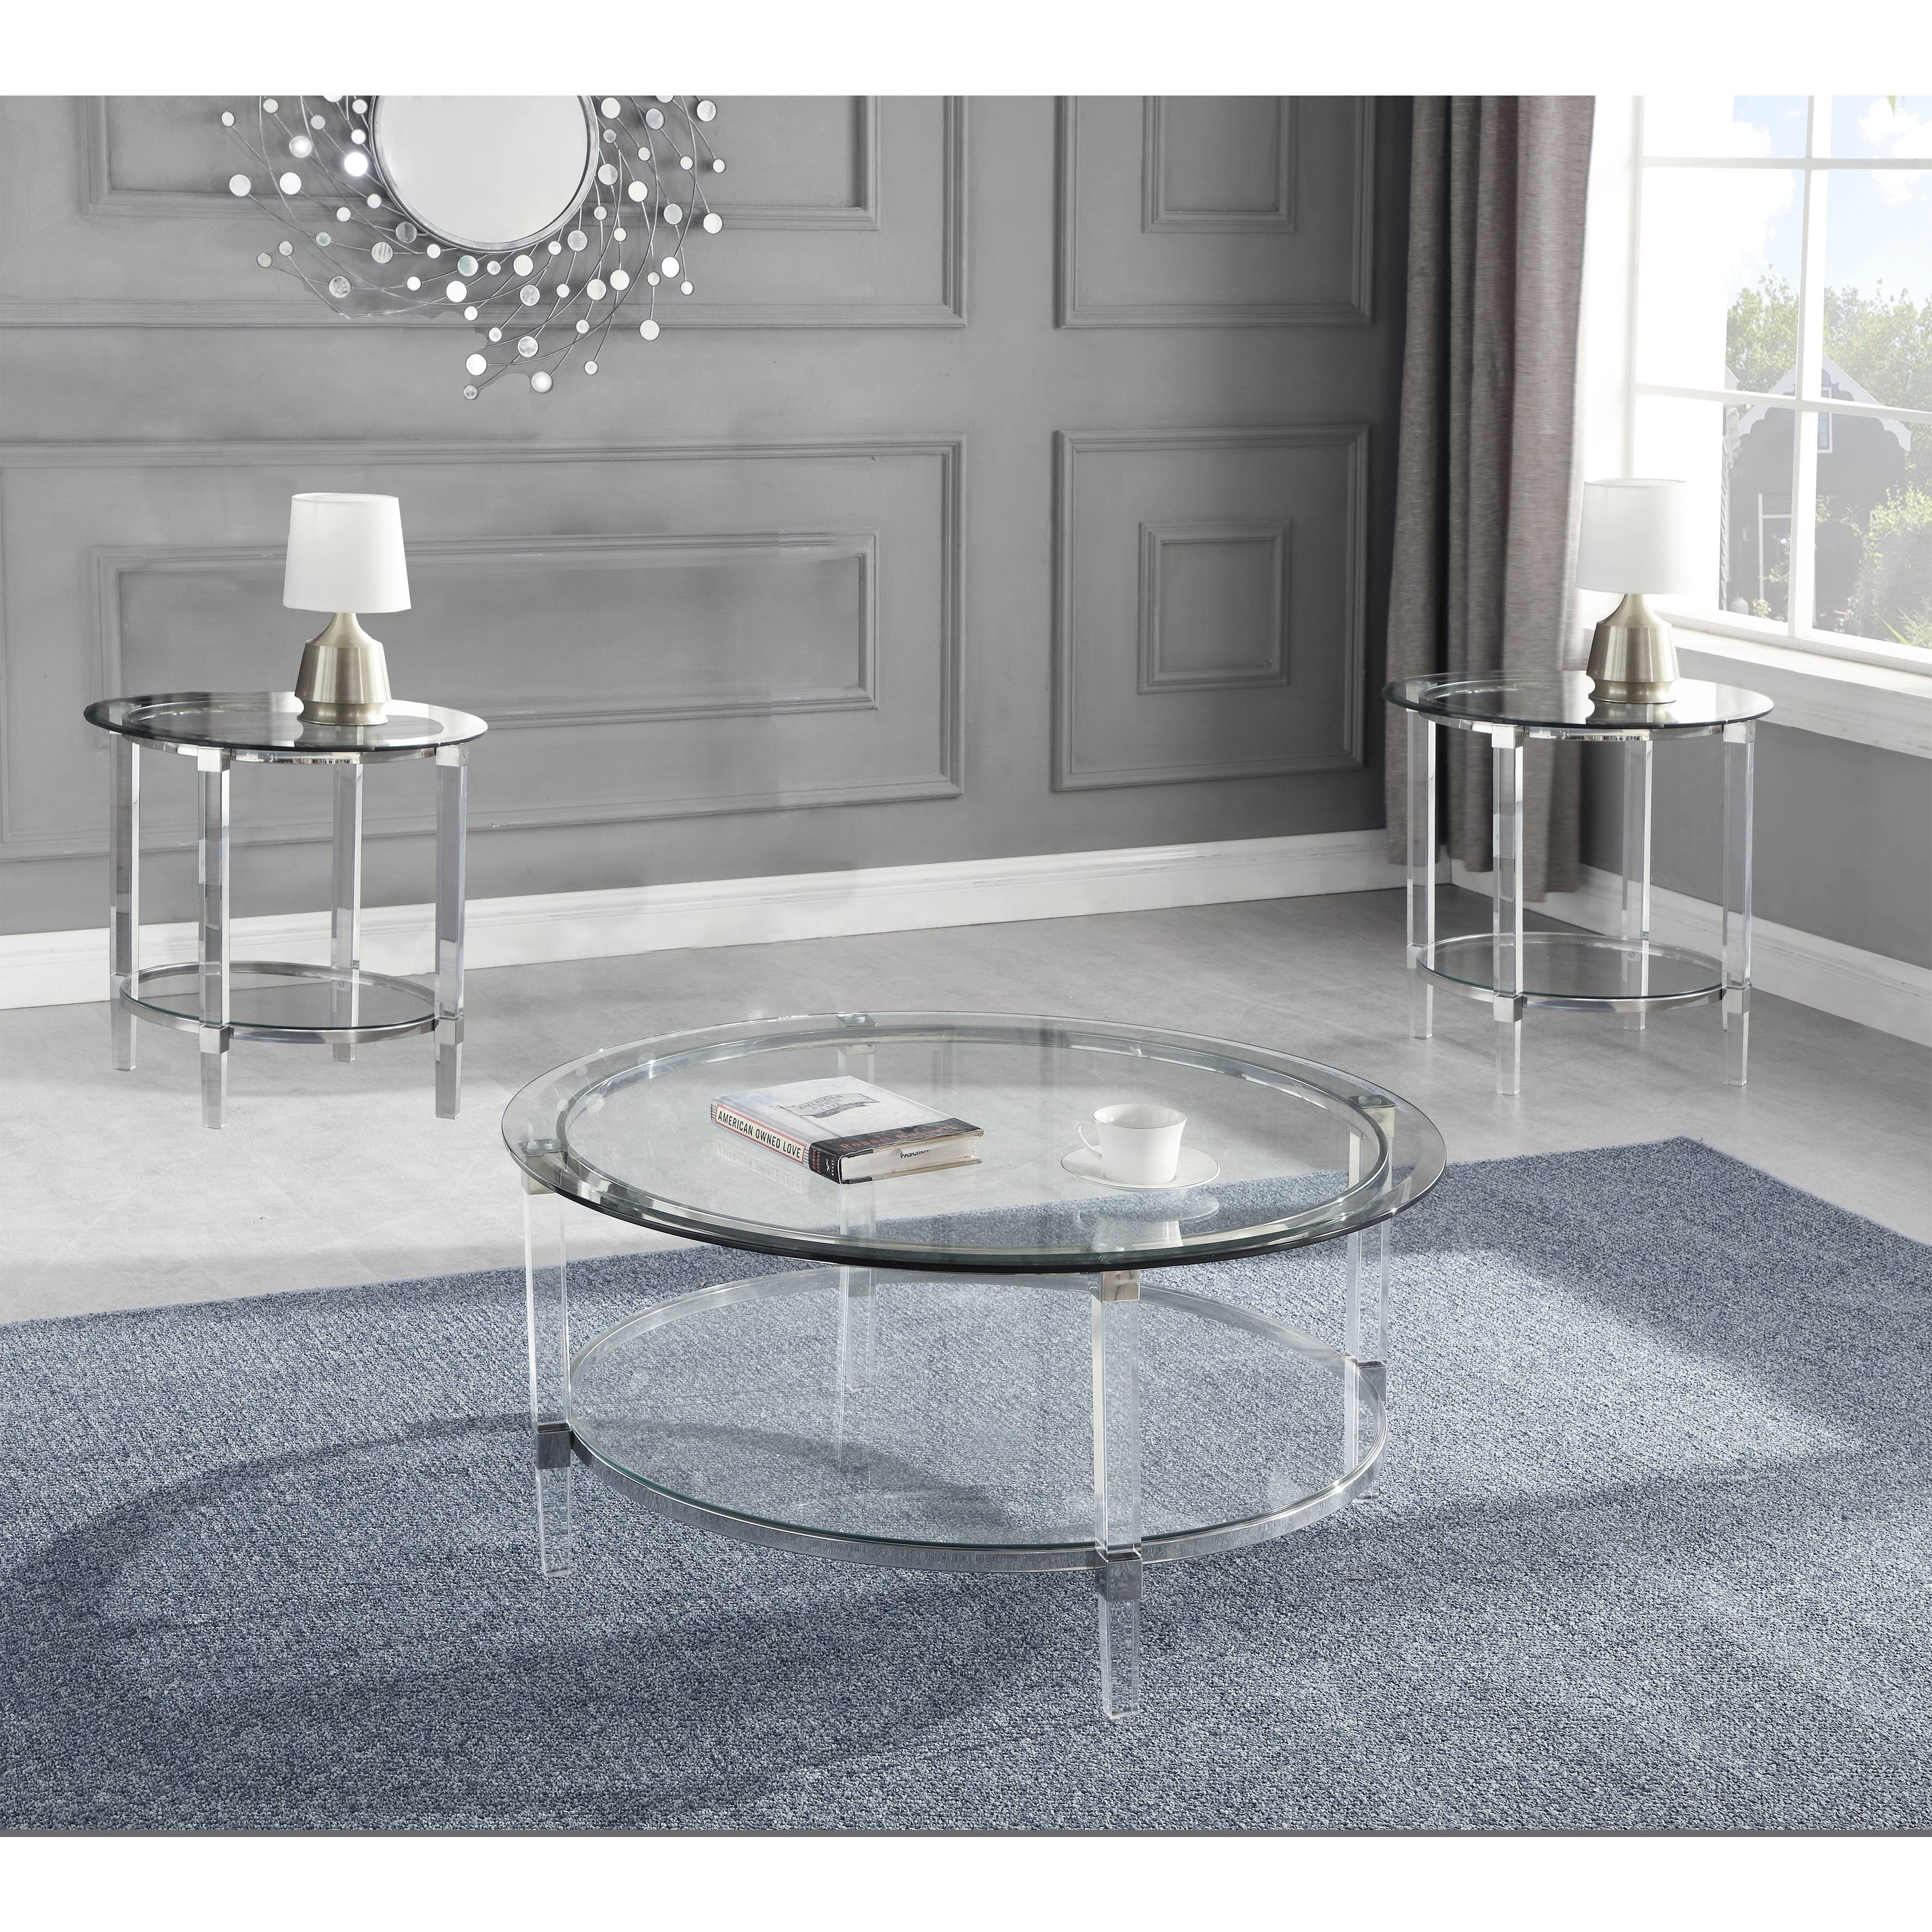 Picture of: Best Quality Furniture 3 Piece Coffee Table Set With Round Clear Glass Top And Acrylic Legs Overstock 30501524